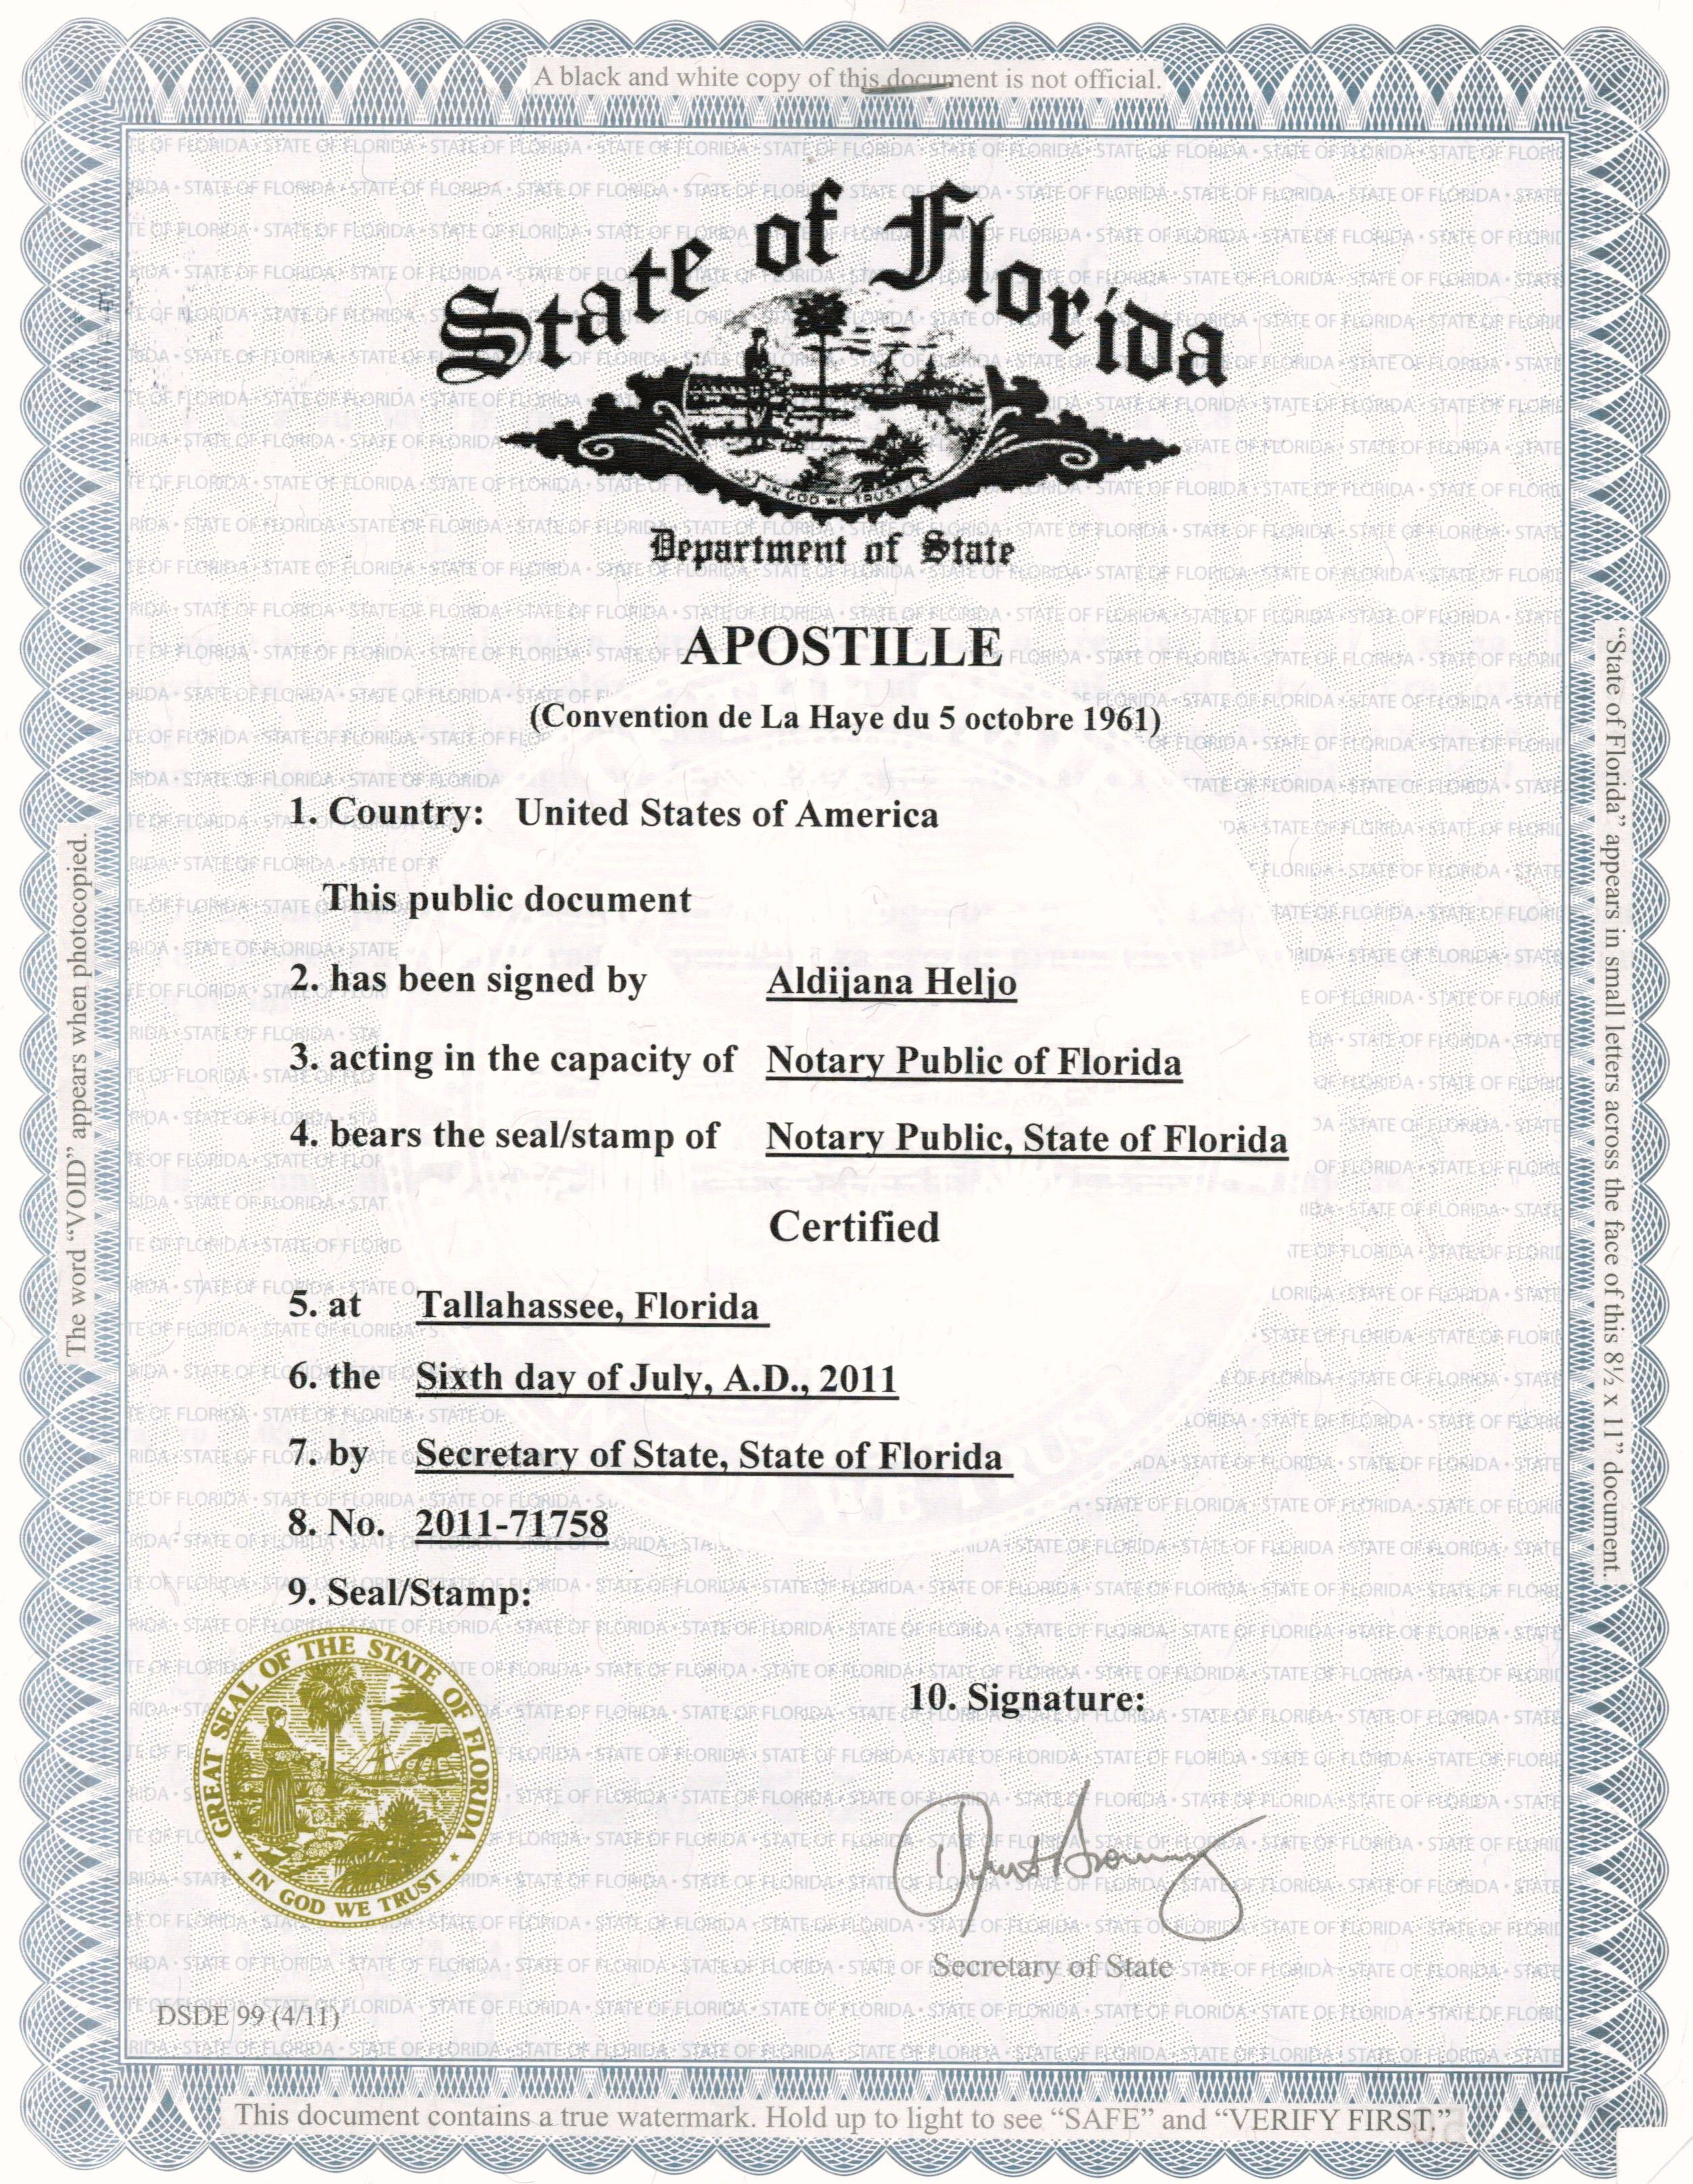 Website apostille portfolio notary apostille service inc legalization or certification of authority images by notary apostille service xflitez Choice Image